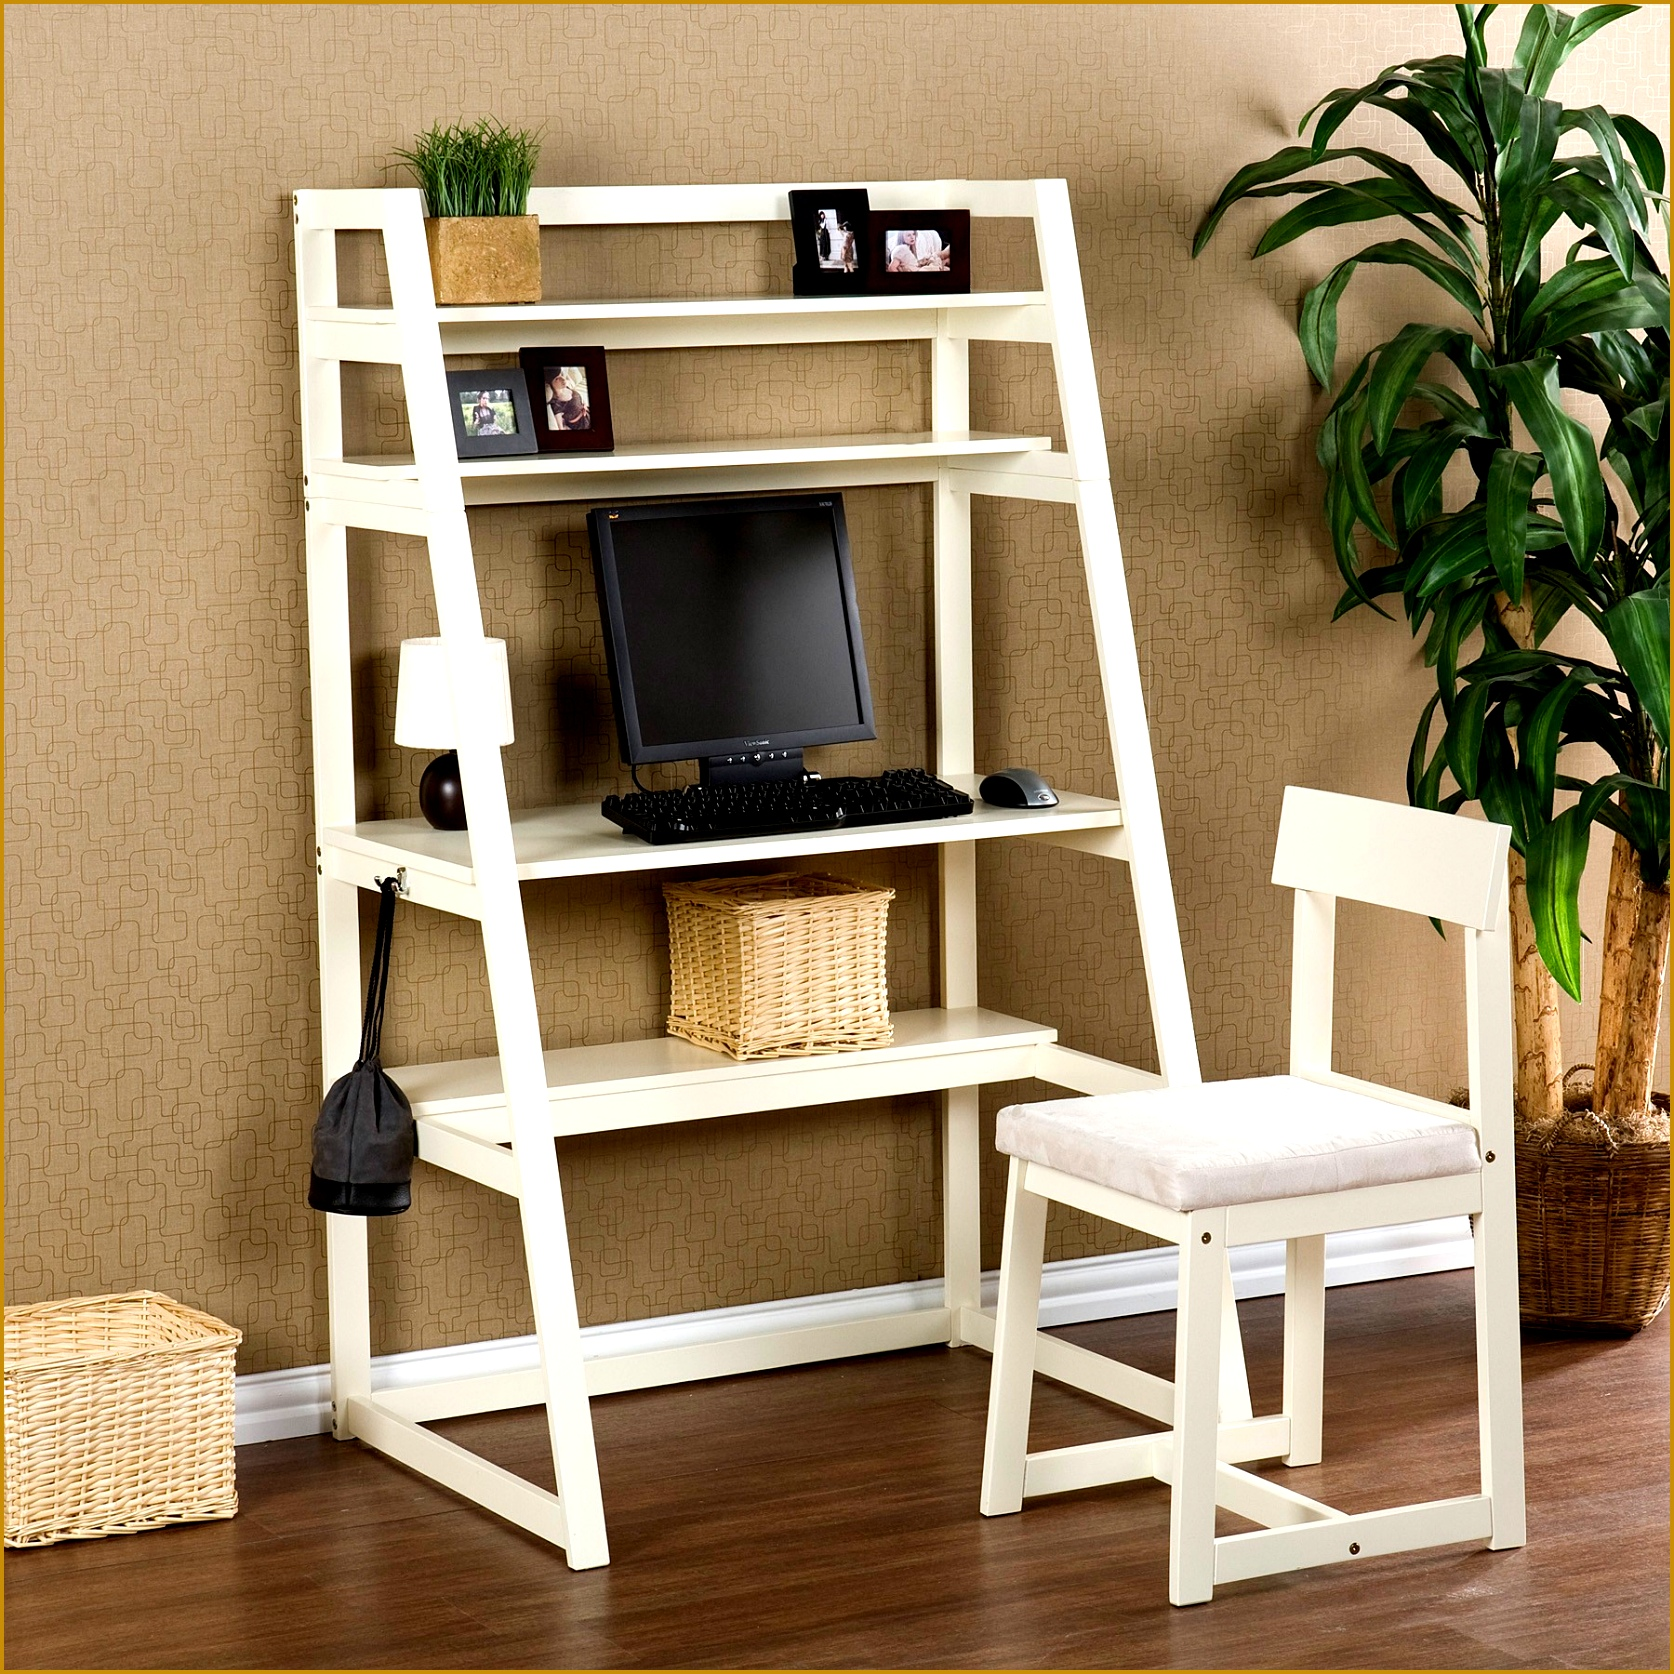 Furniture Simple Creative White Home fice Design Using A Tiered Racks As fice Desk With 16741674